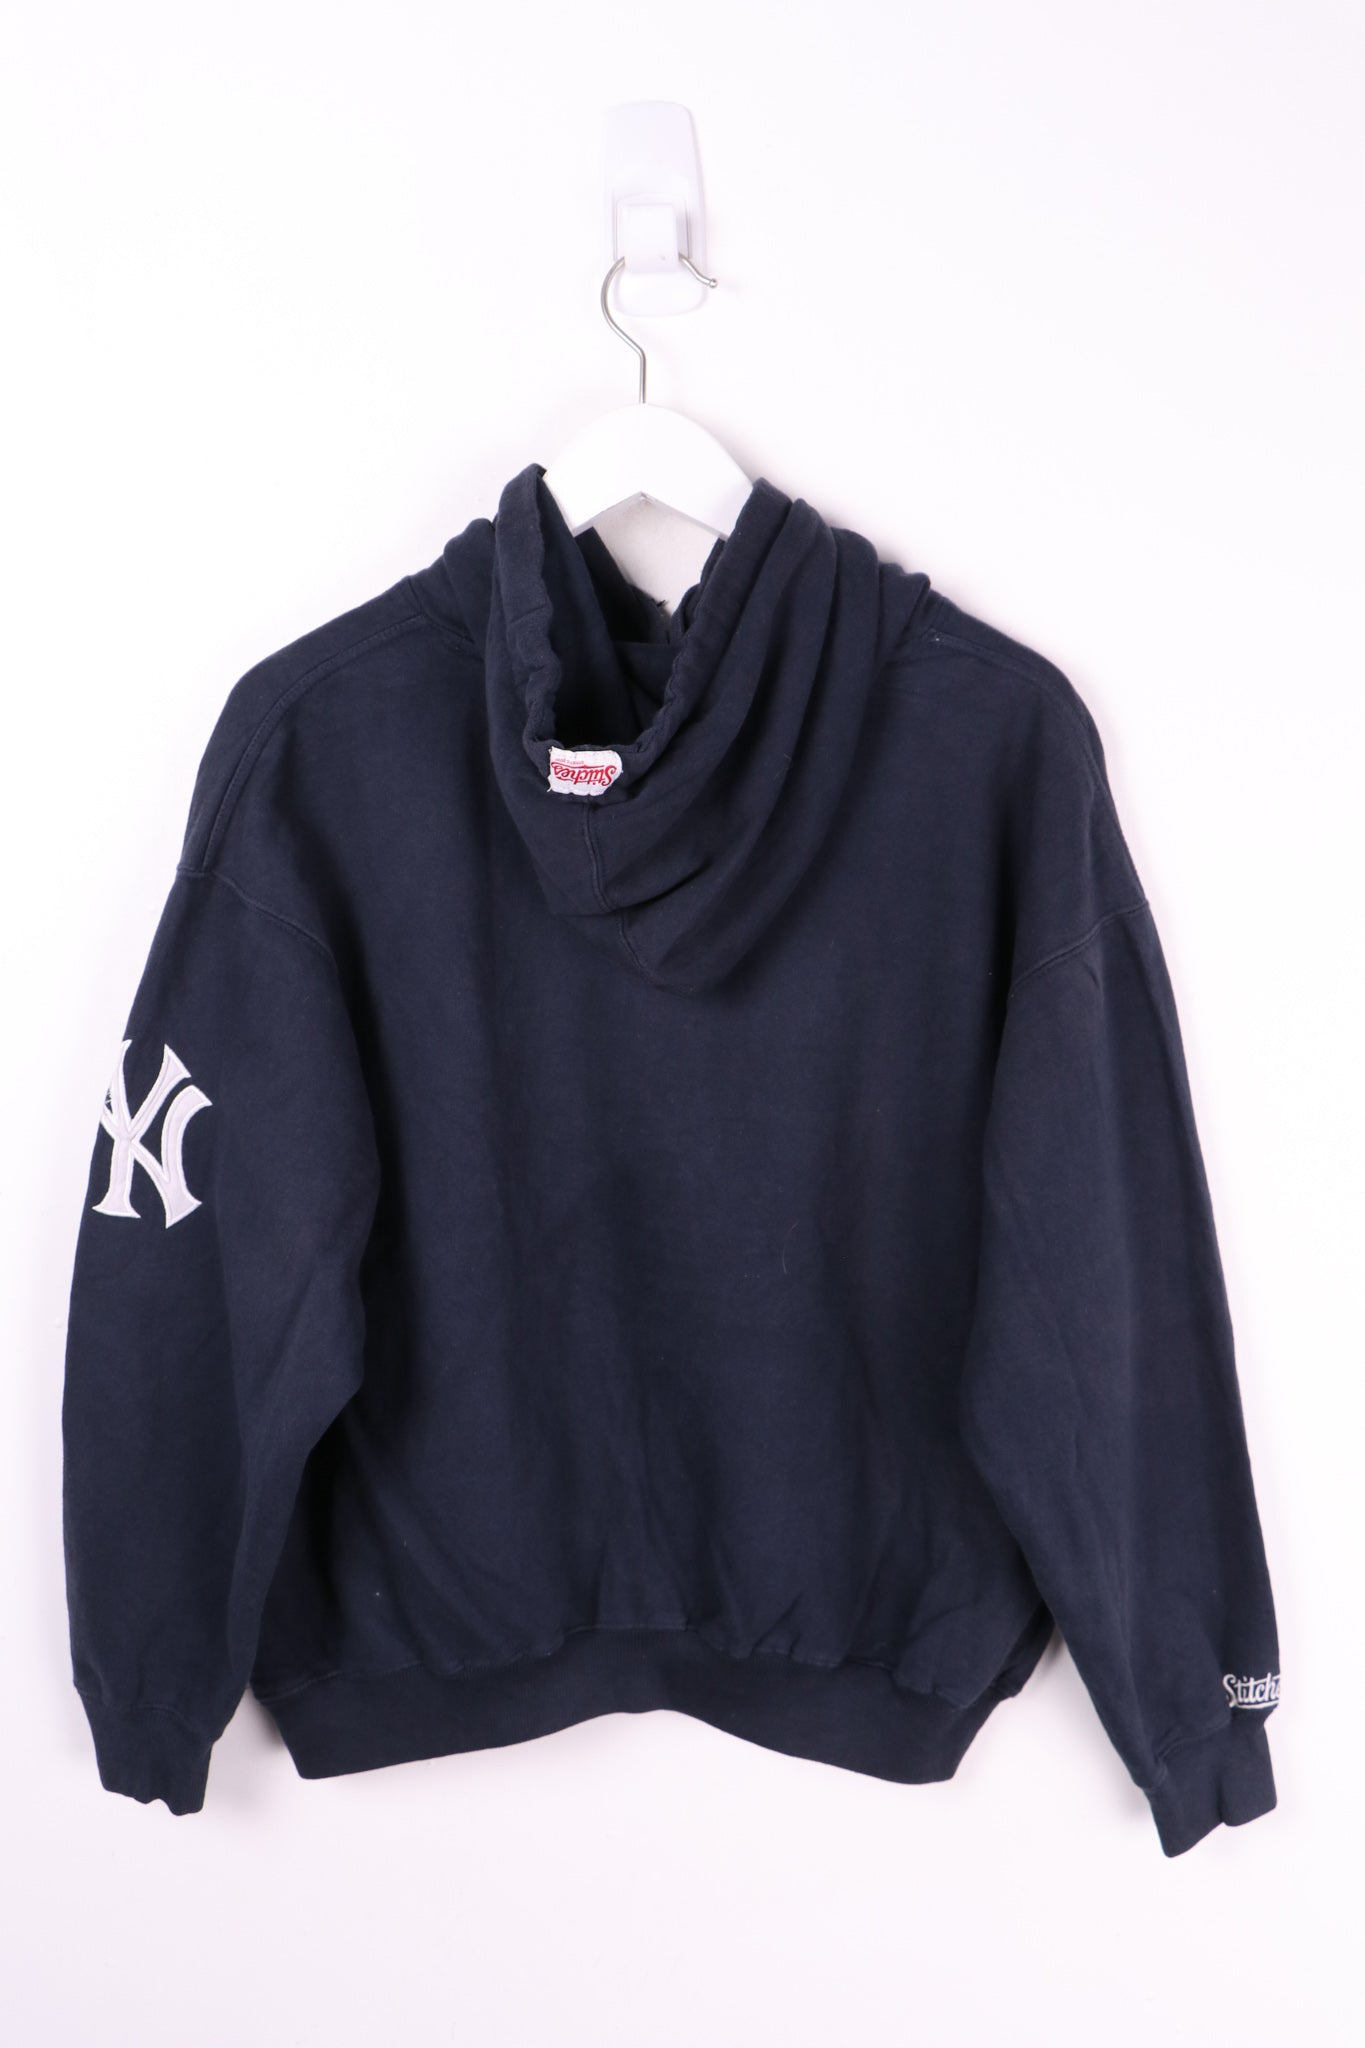 cb6a7b7deadd Vintage Champion Spellout Hoodie *XS* – Restated Vintage